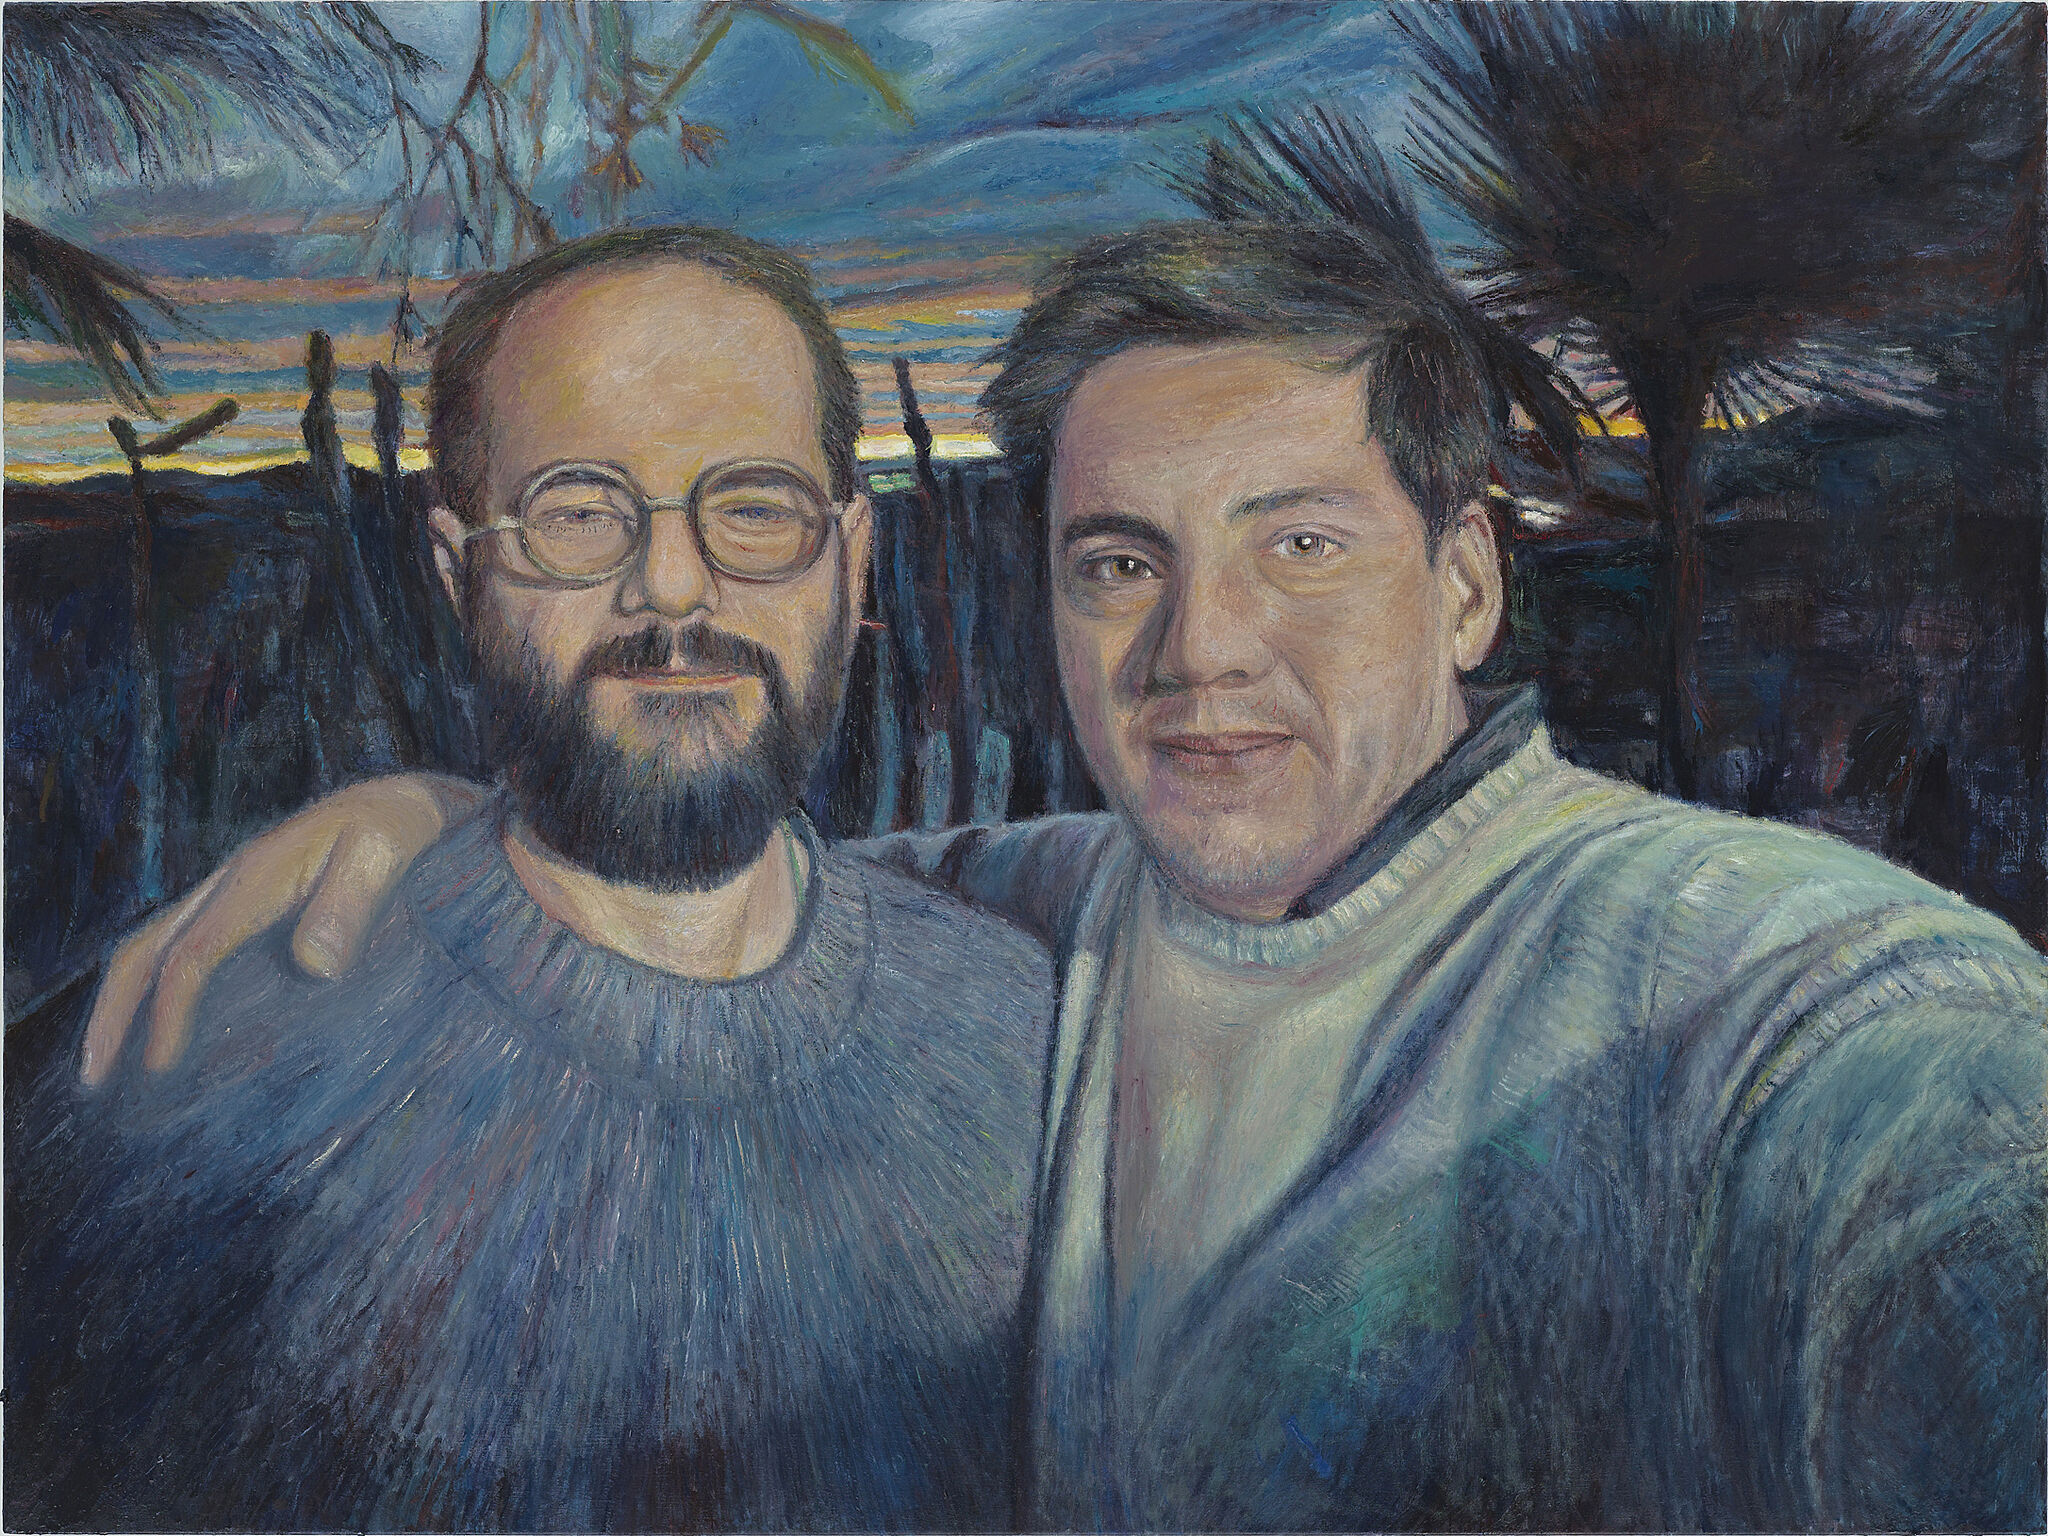 A painting of a selfie of two men.